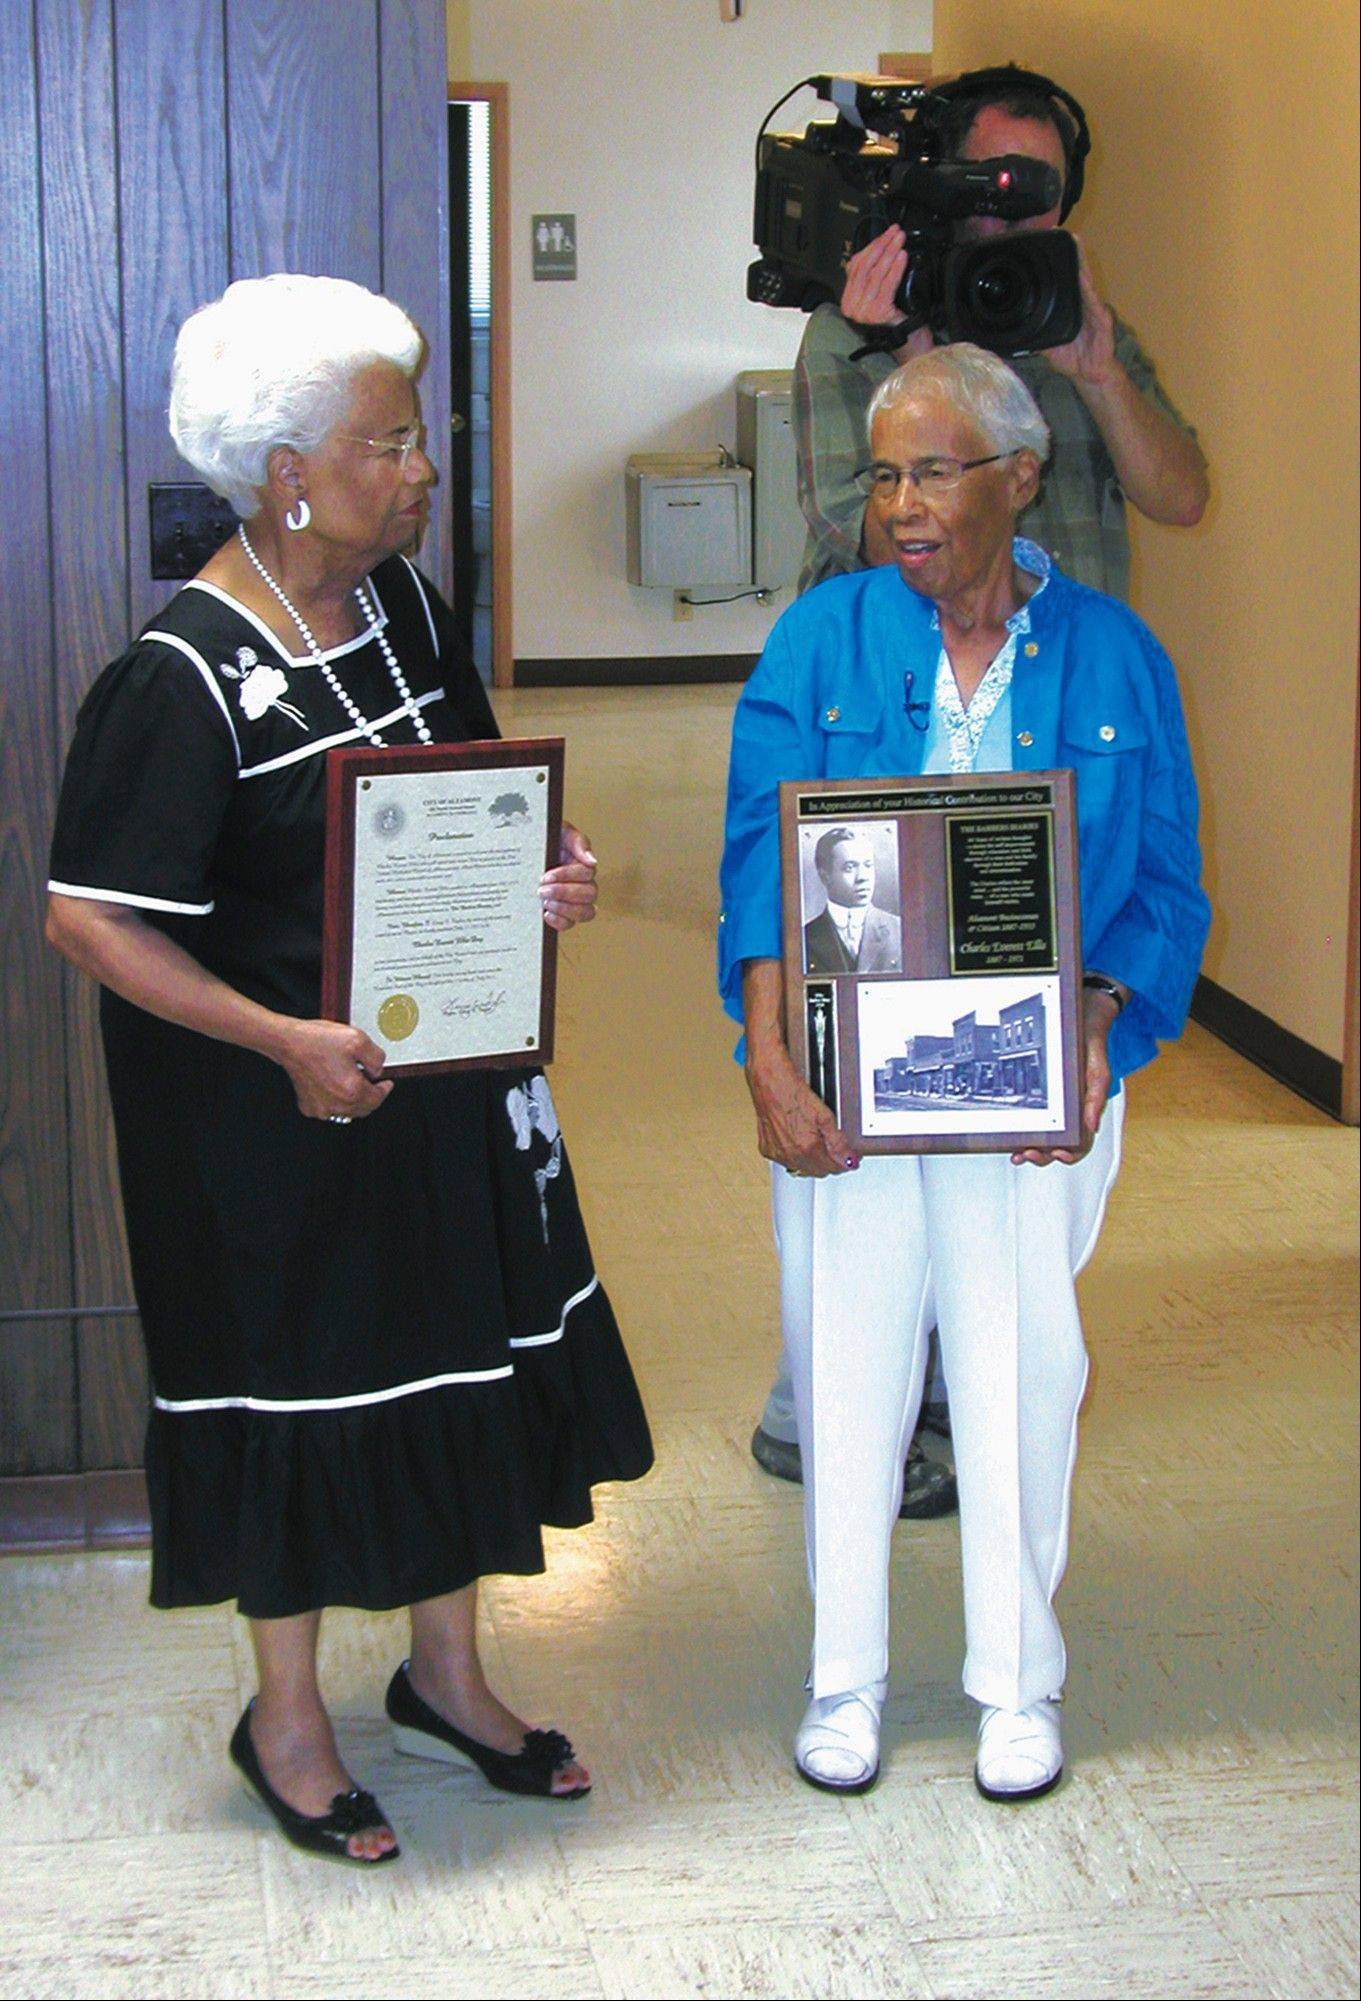 Wilma Ellis Kazemzadeh, left, and Adrienne Ellis Reeves accept a plaque in honor of their father, Charles Everett Ellis, on July 31 in Altamont, Ill. Behind the sisters, Michael Wunsch is shooting footage for an upcoming documentary centered around a diary that Charles Ellis kept for more than 40 years.